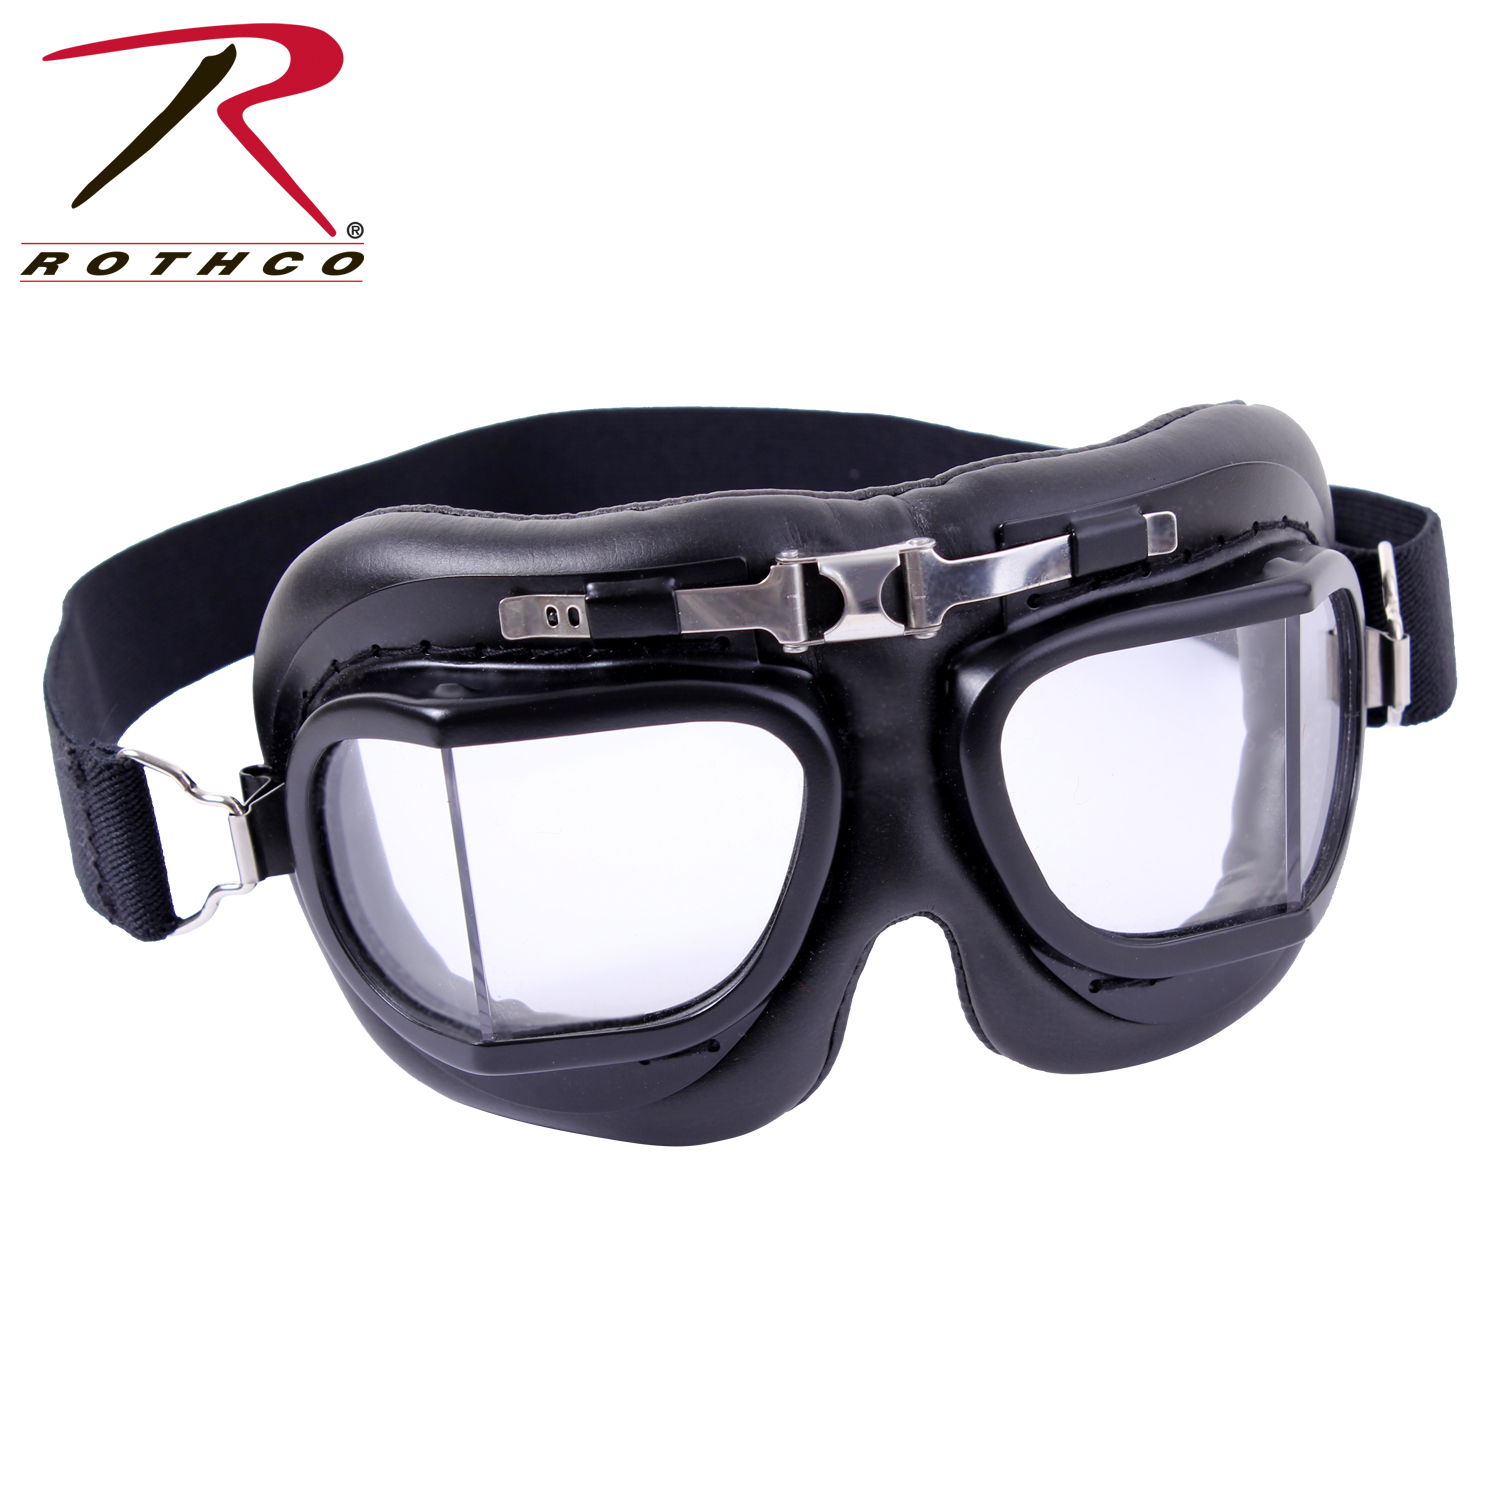 f7064f996a1 Rothco Aviator Style Goggles